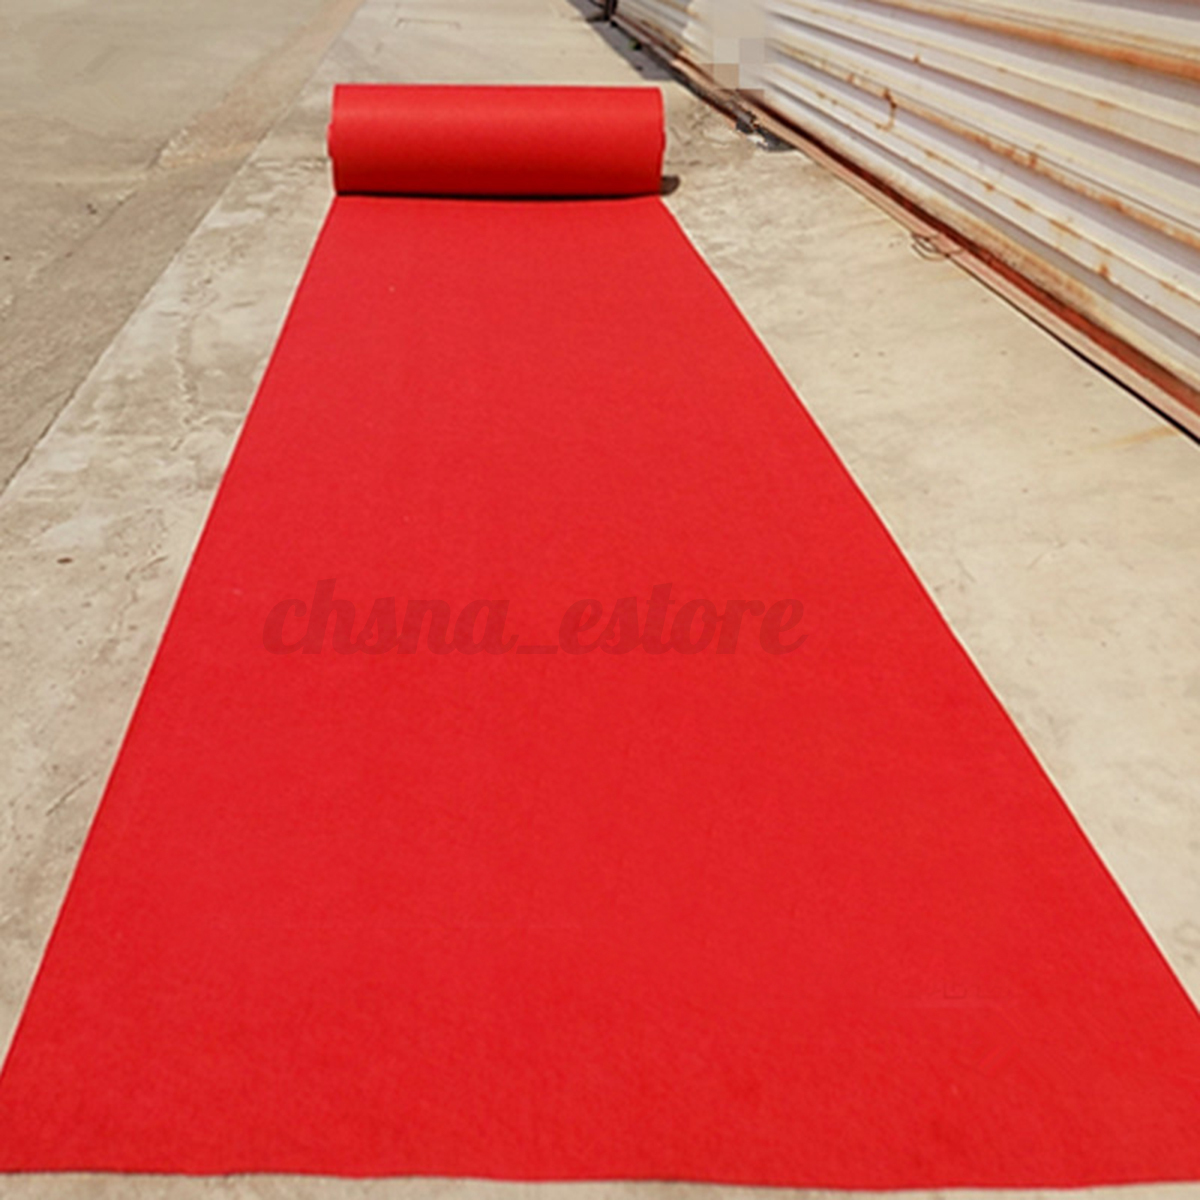 Red Carpet Aisle Runner 32x2 6ft Indoor Outdoor Carpet For Parties